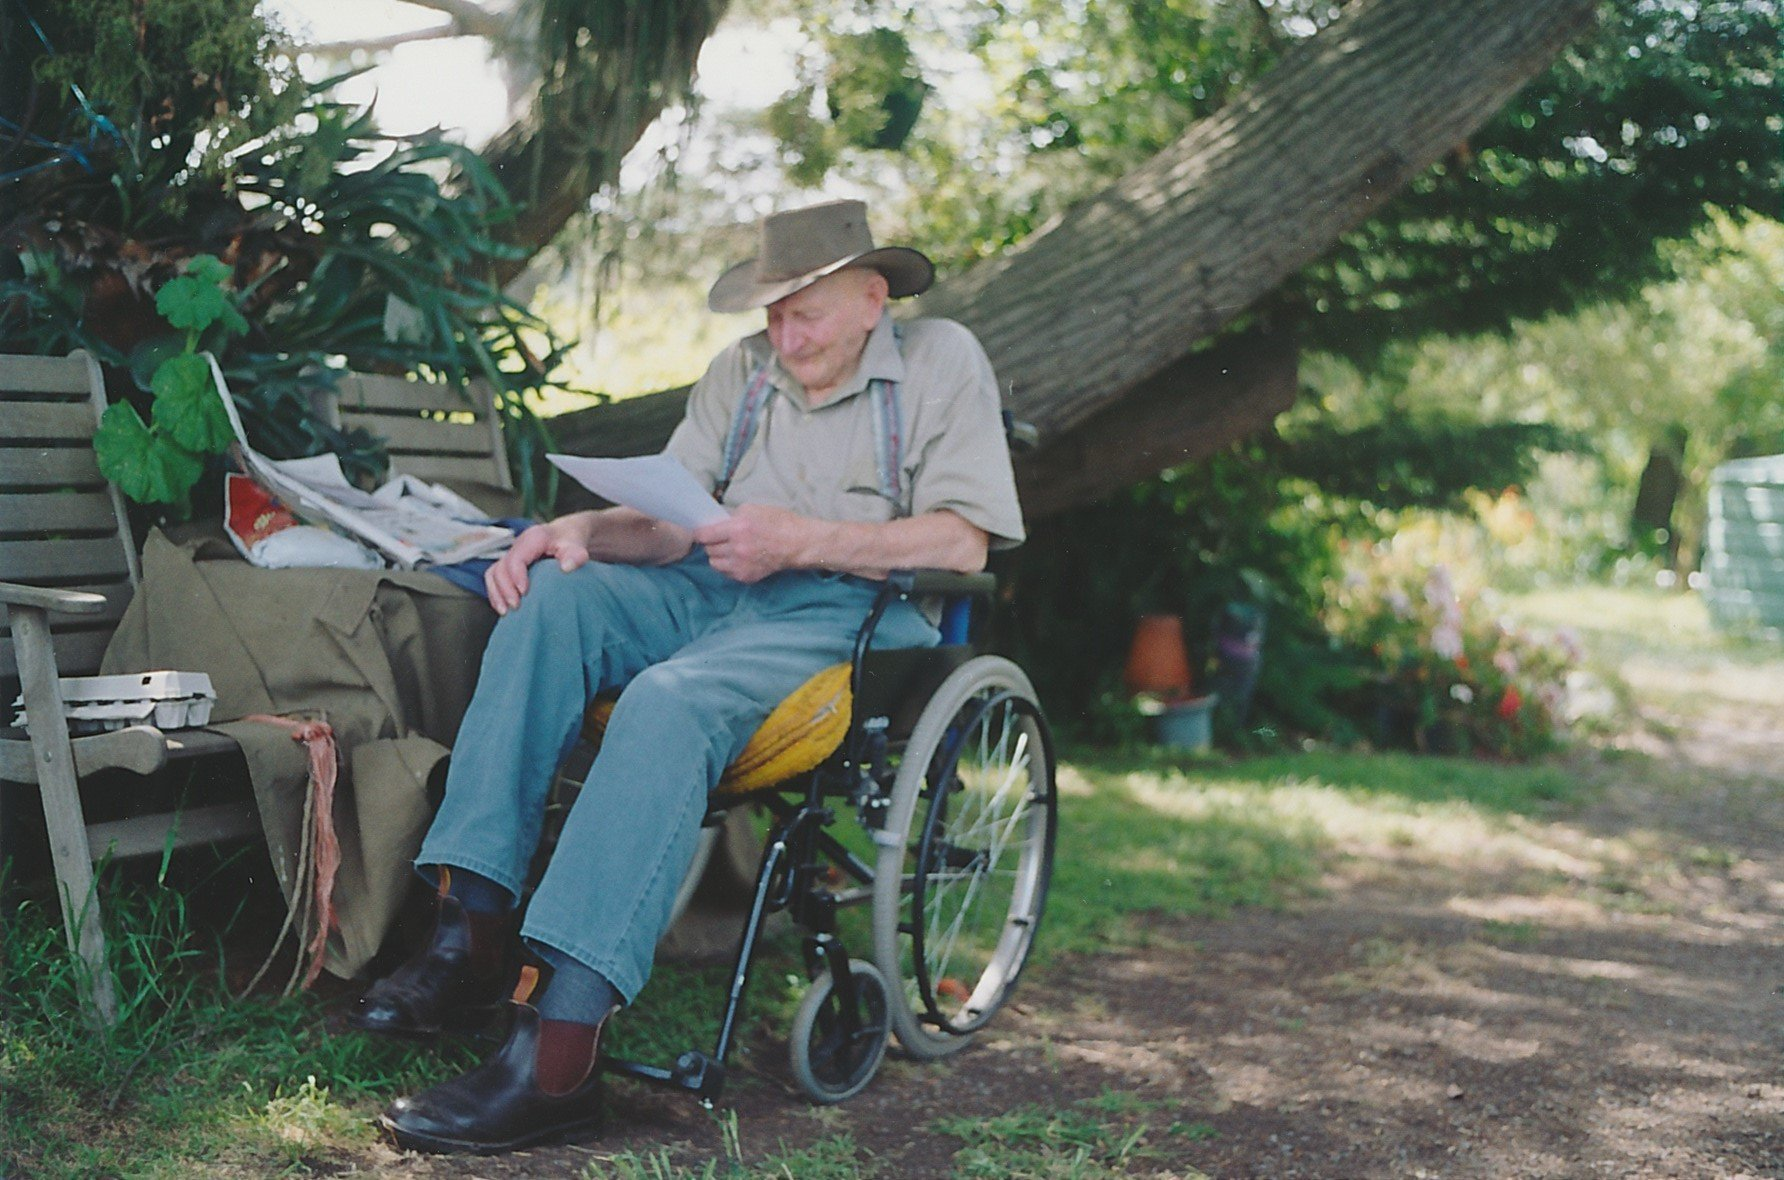 Arnold Mervyn 'Merv' Draper (1914-2004), youngest son of James and Blanche (nee Hurrey) Draper, and the author's uncle.  Pictured at 'Barton Hill' November 2003